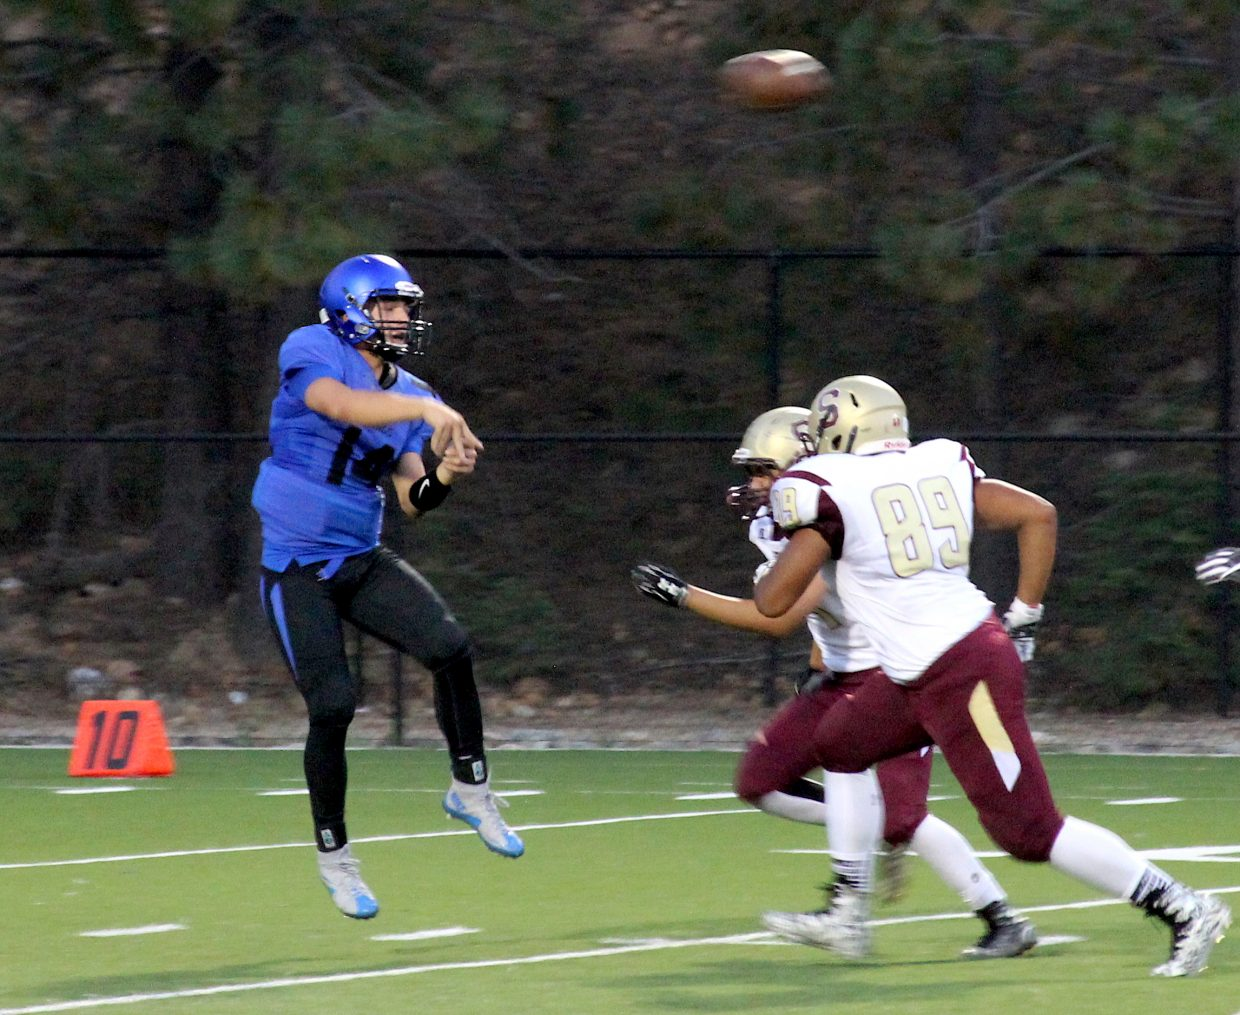 Viking quarterback Peyton Galli passes before Sparks defenders can bring him down. Galli threw for 226 yards and three touchdowns.